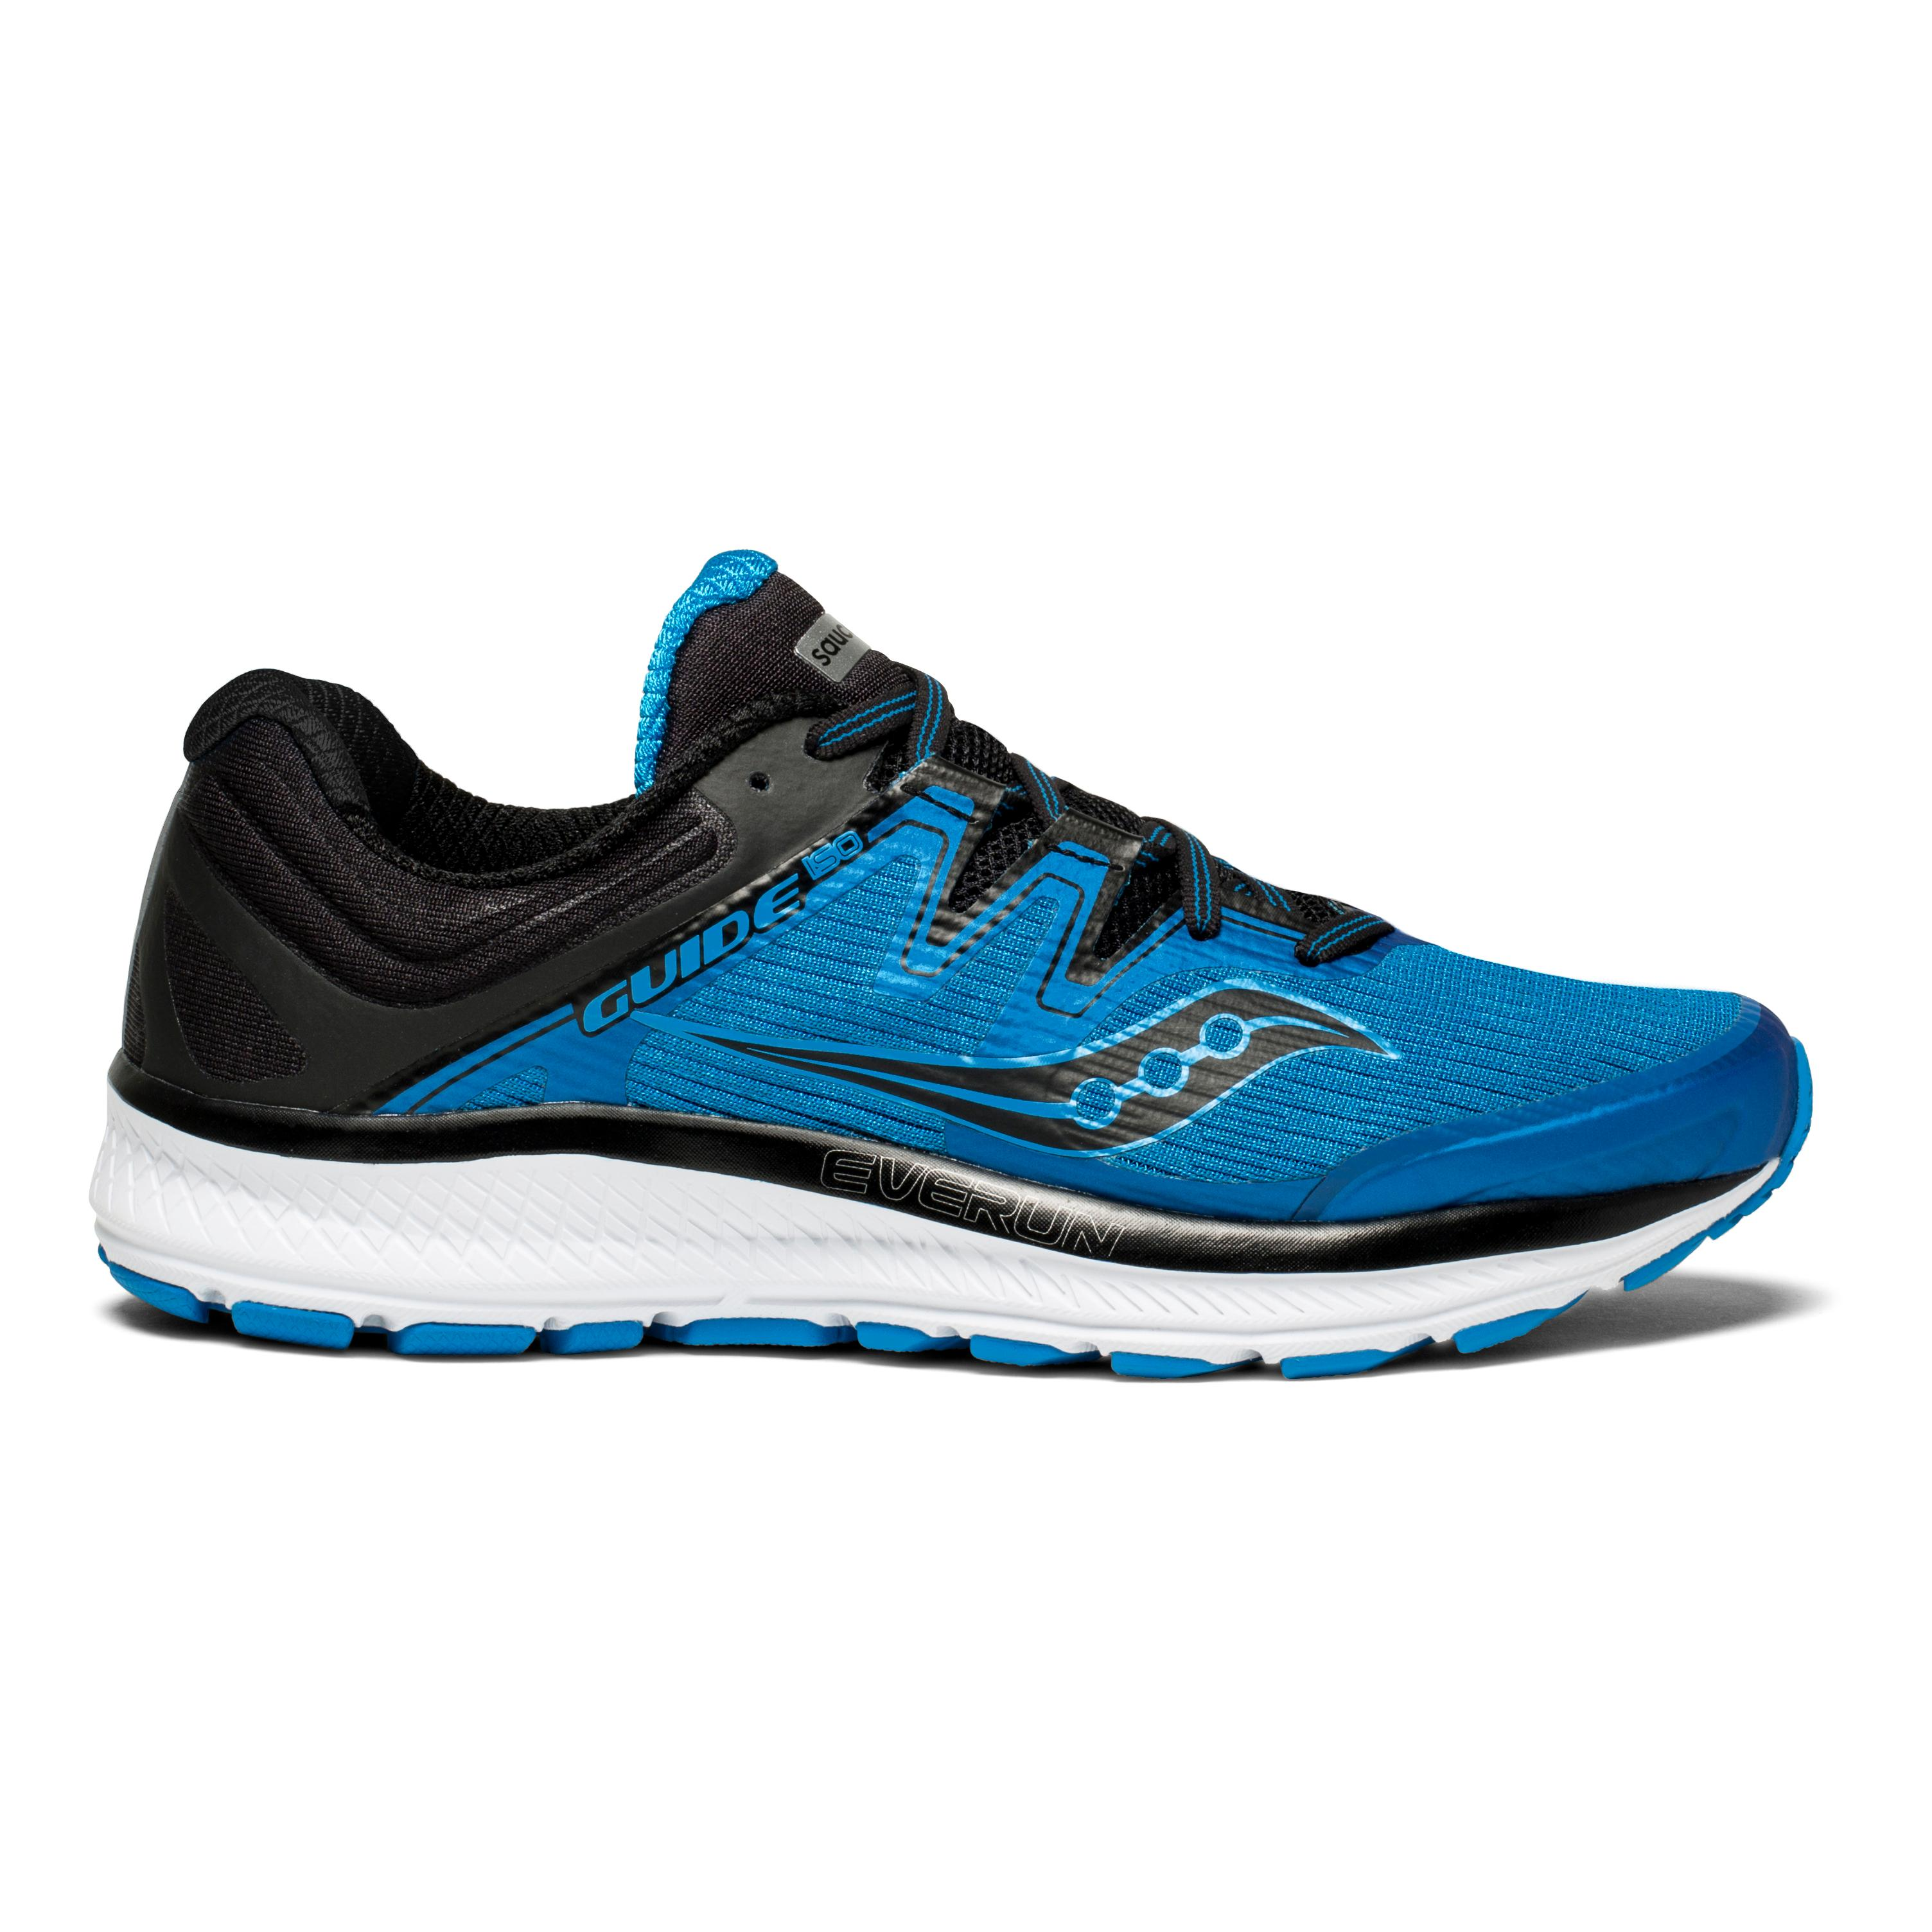 Sauconys20415Guide Homme Sauconys20415Guide Iso Sauconys20415Guide Iso Homme Iso HommeB HommeB iTPOwXukZ